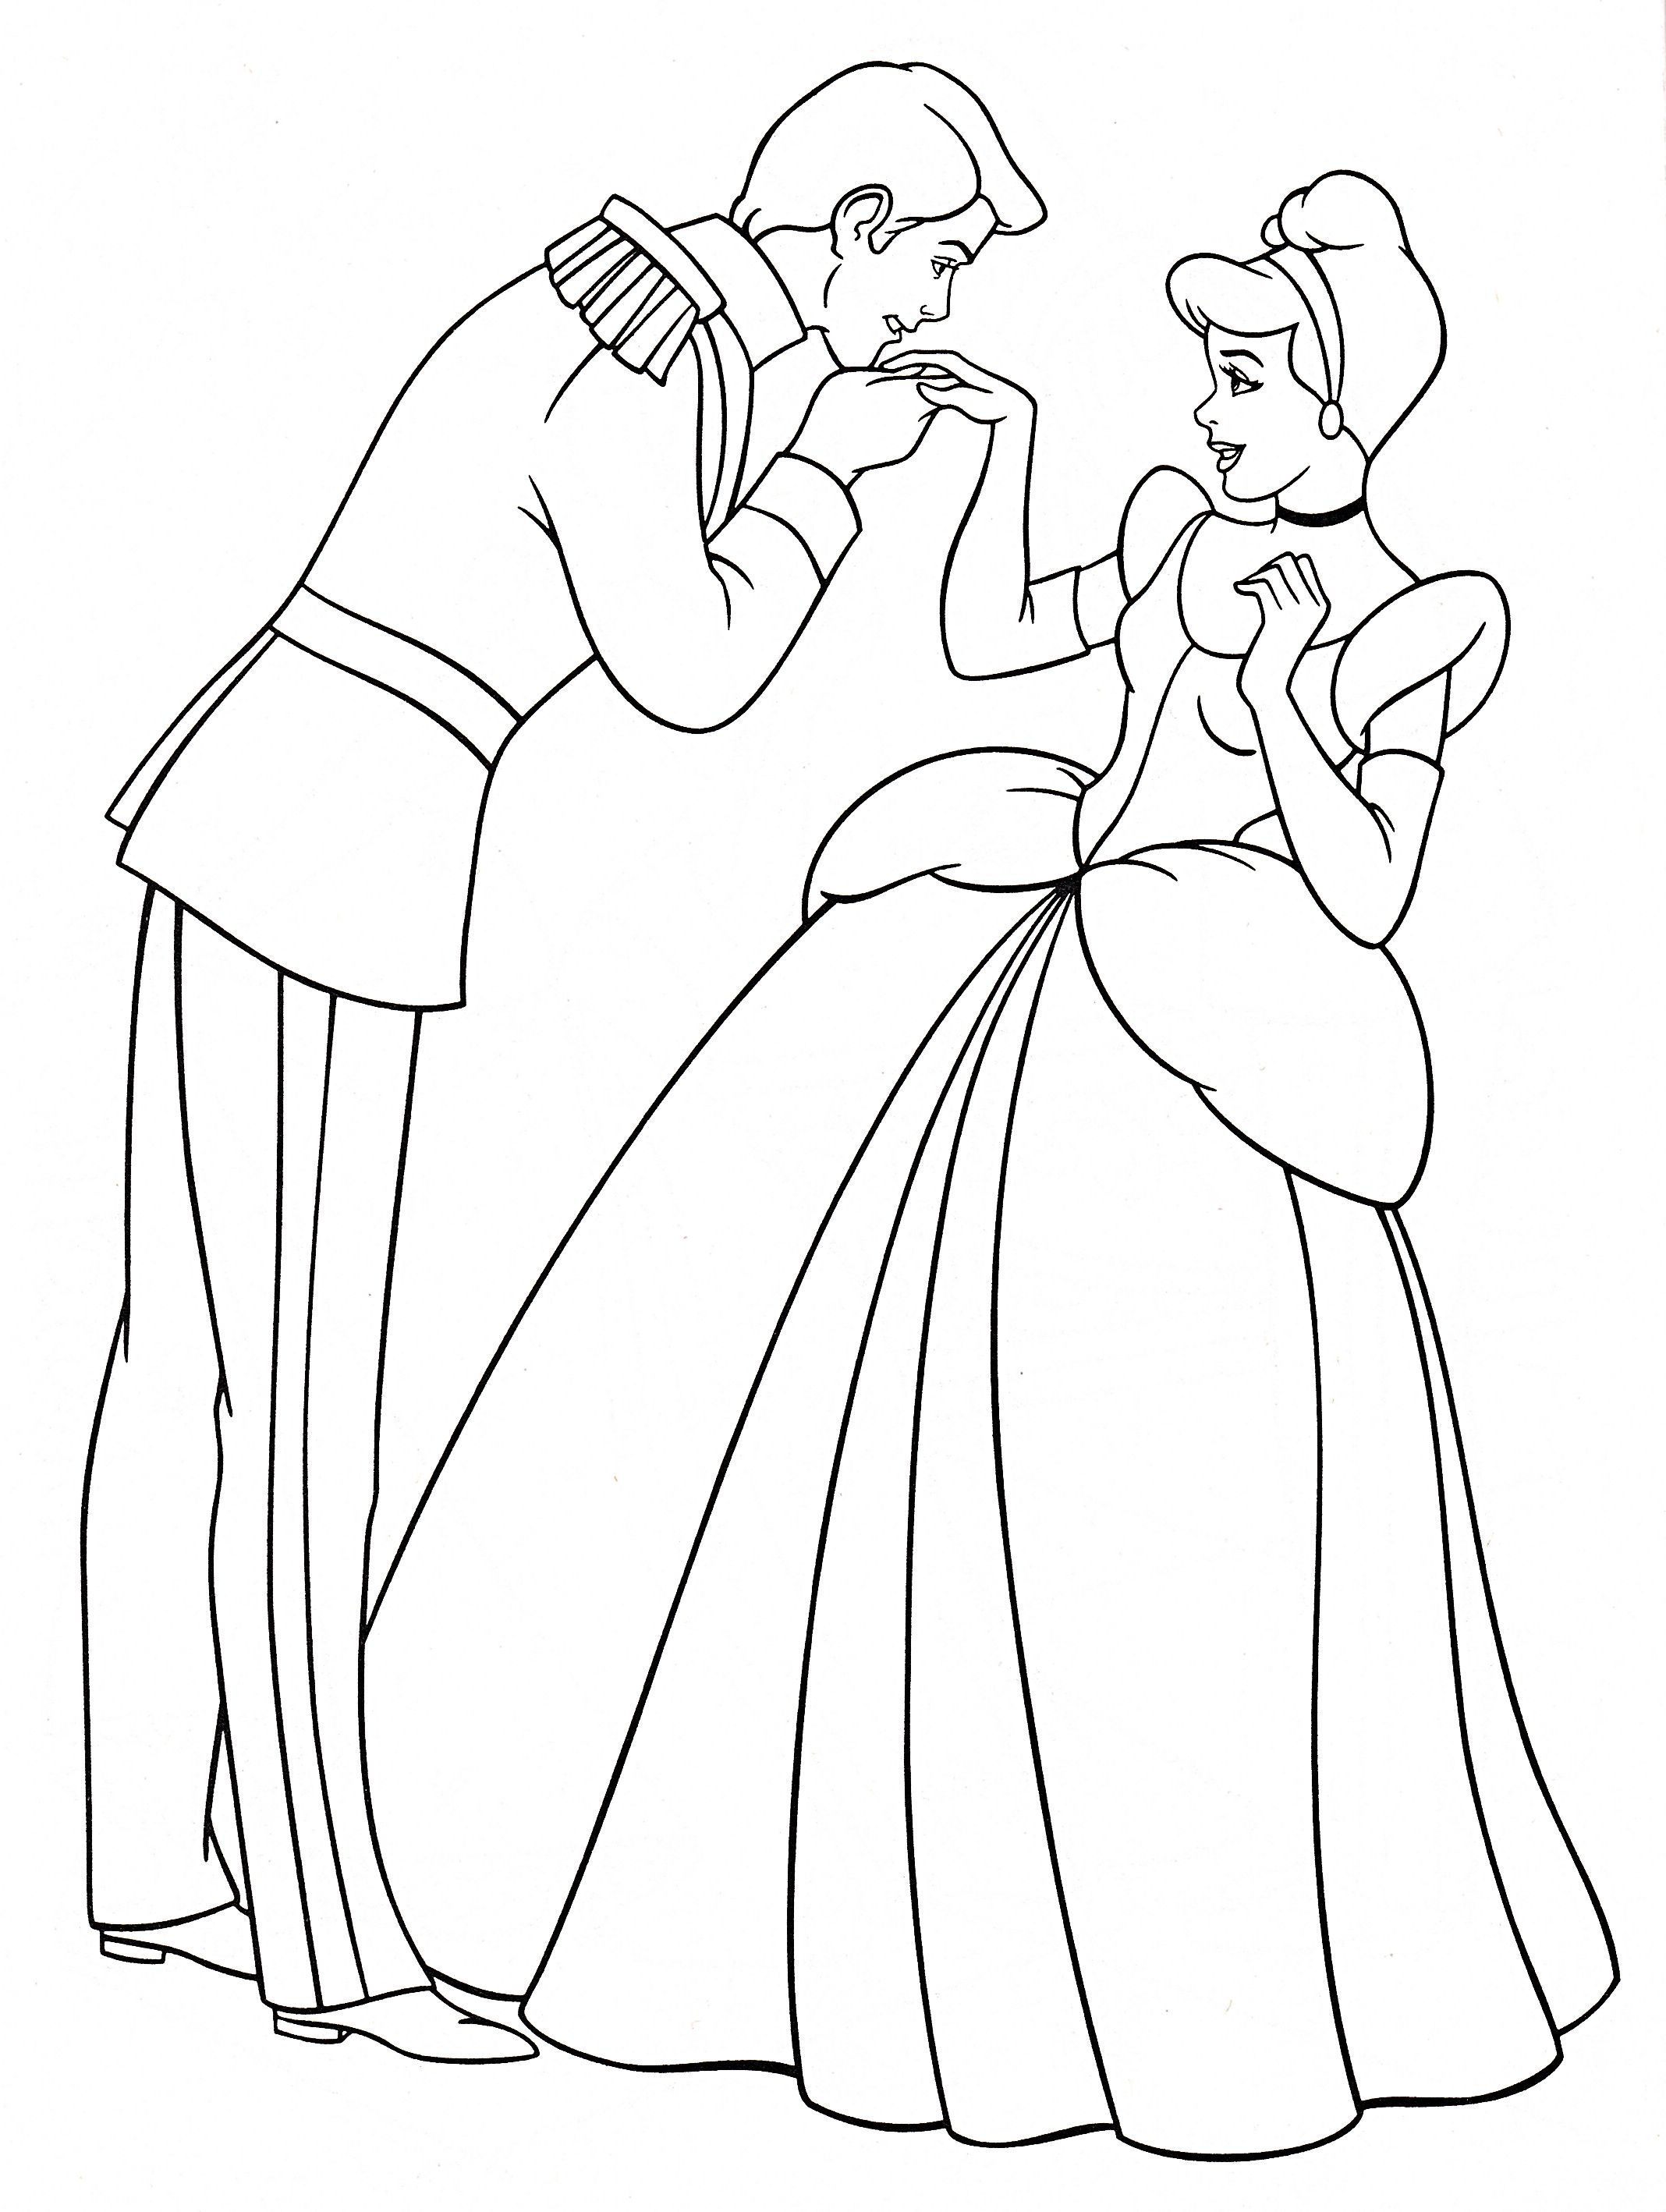 Walt Disney Coloring Pages Prince Charming Princess Cinderella